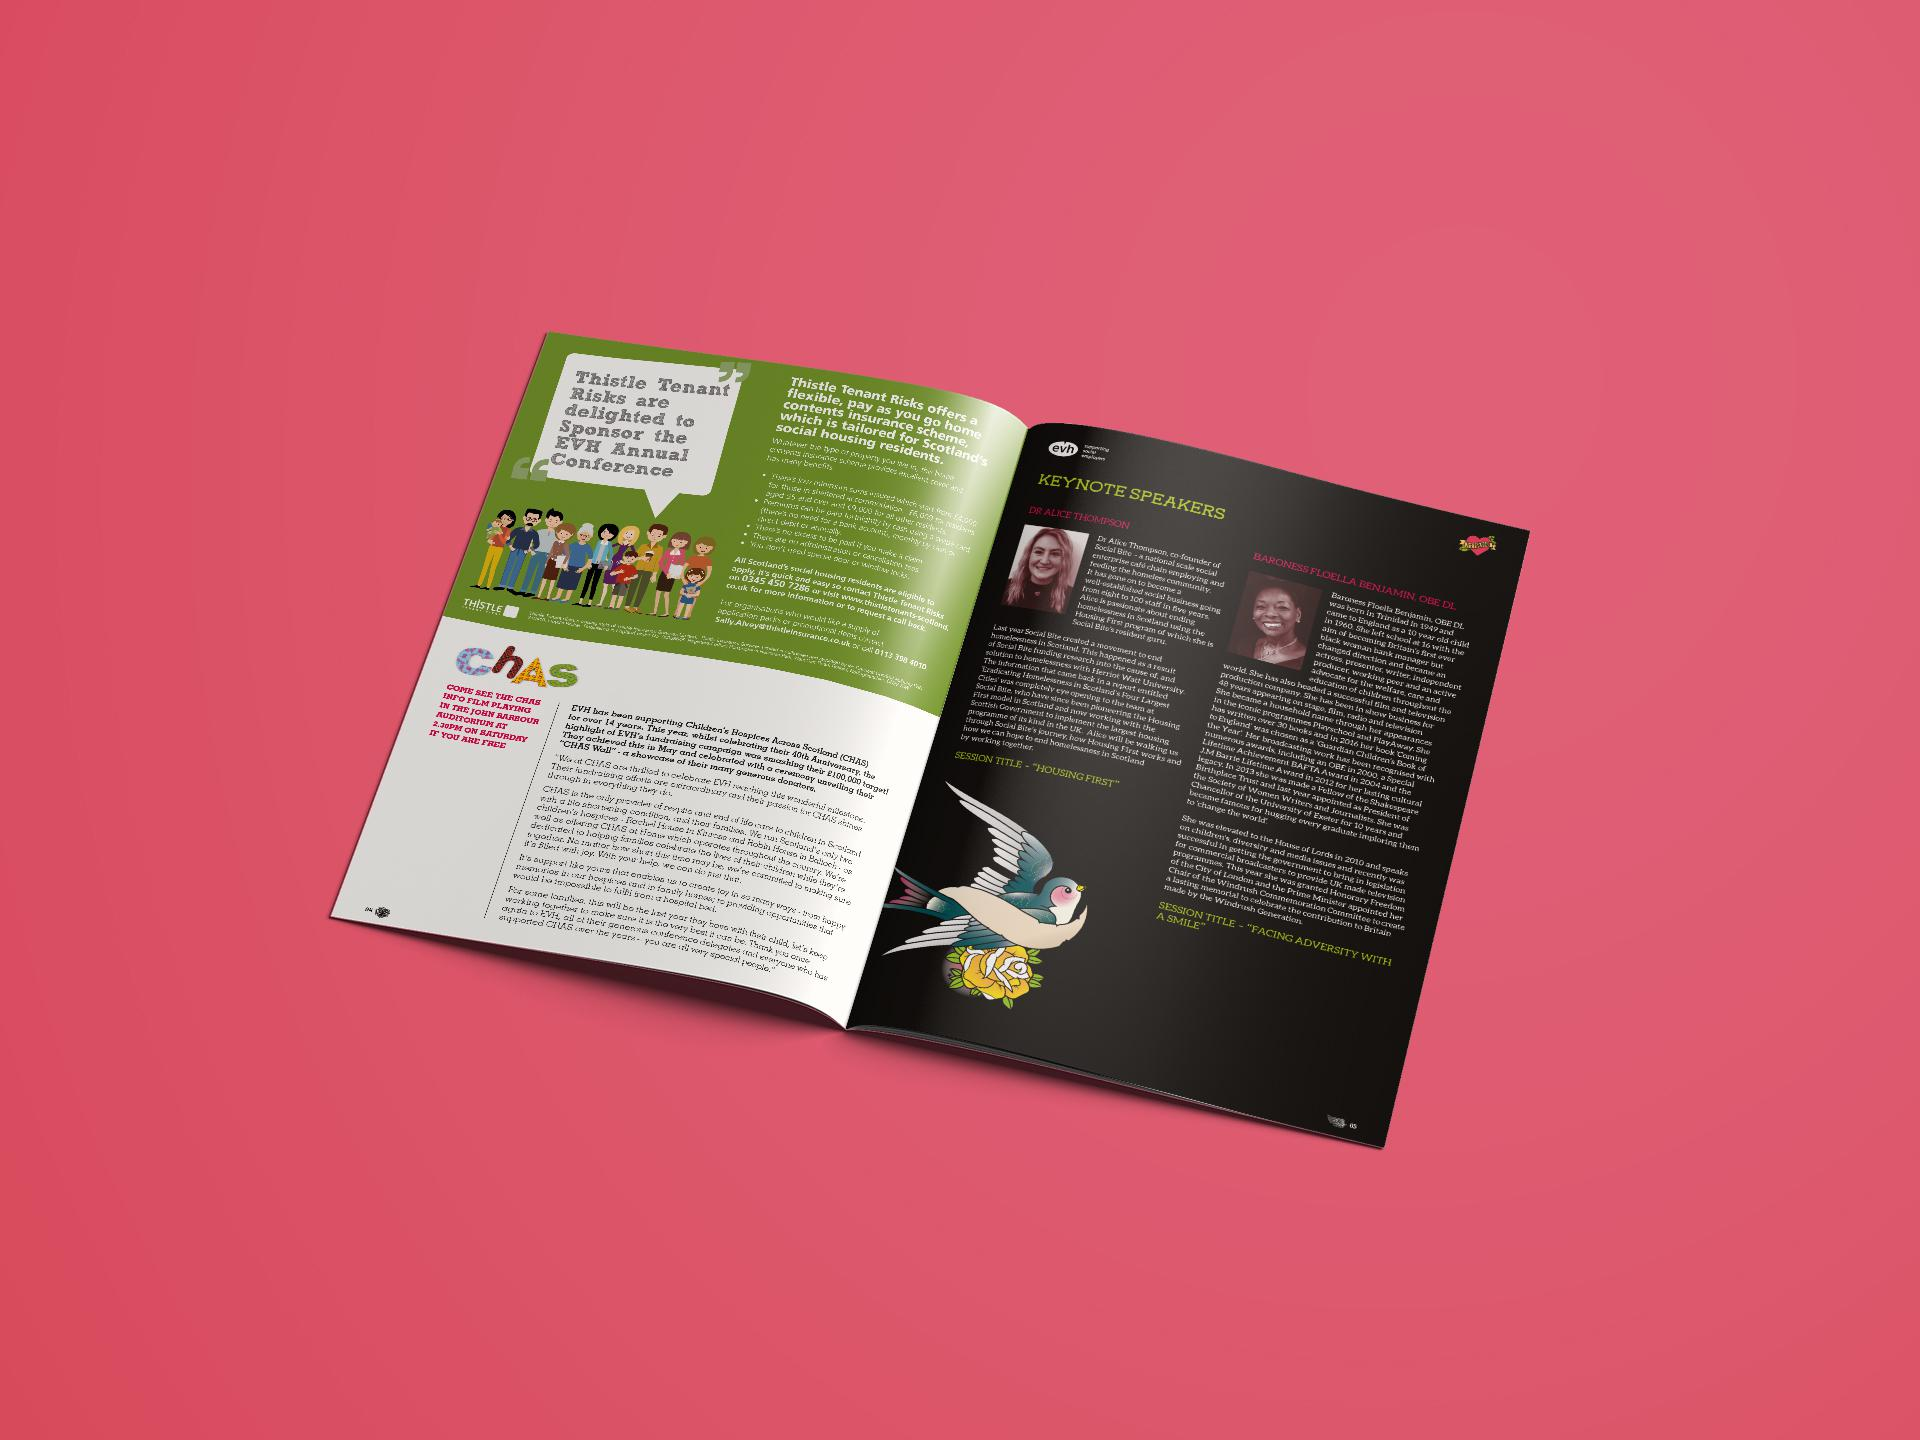 EVH Annual Conference Brochure Design